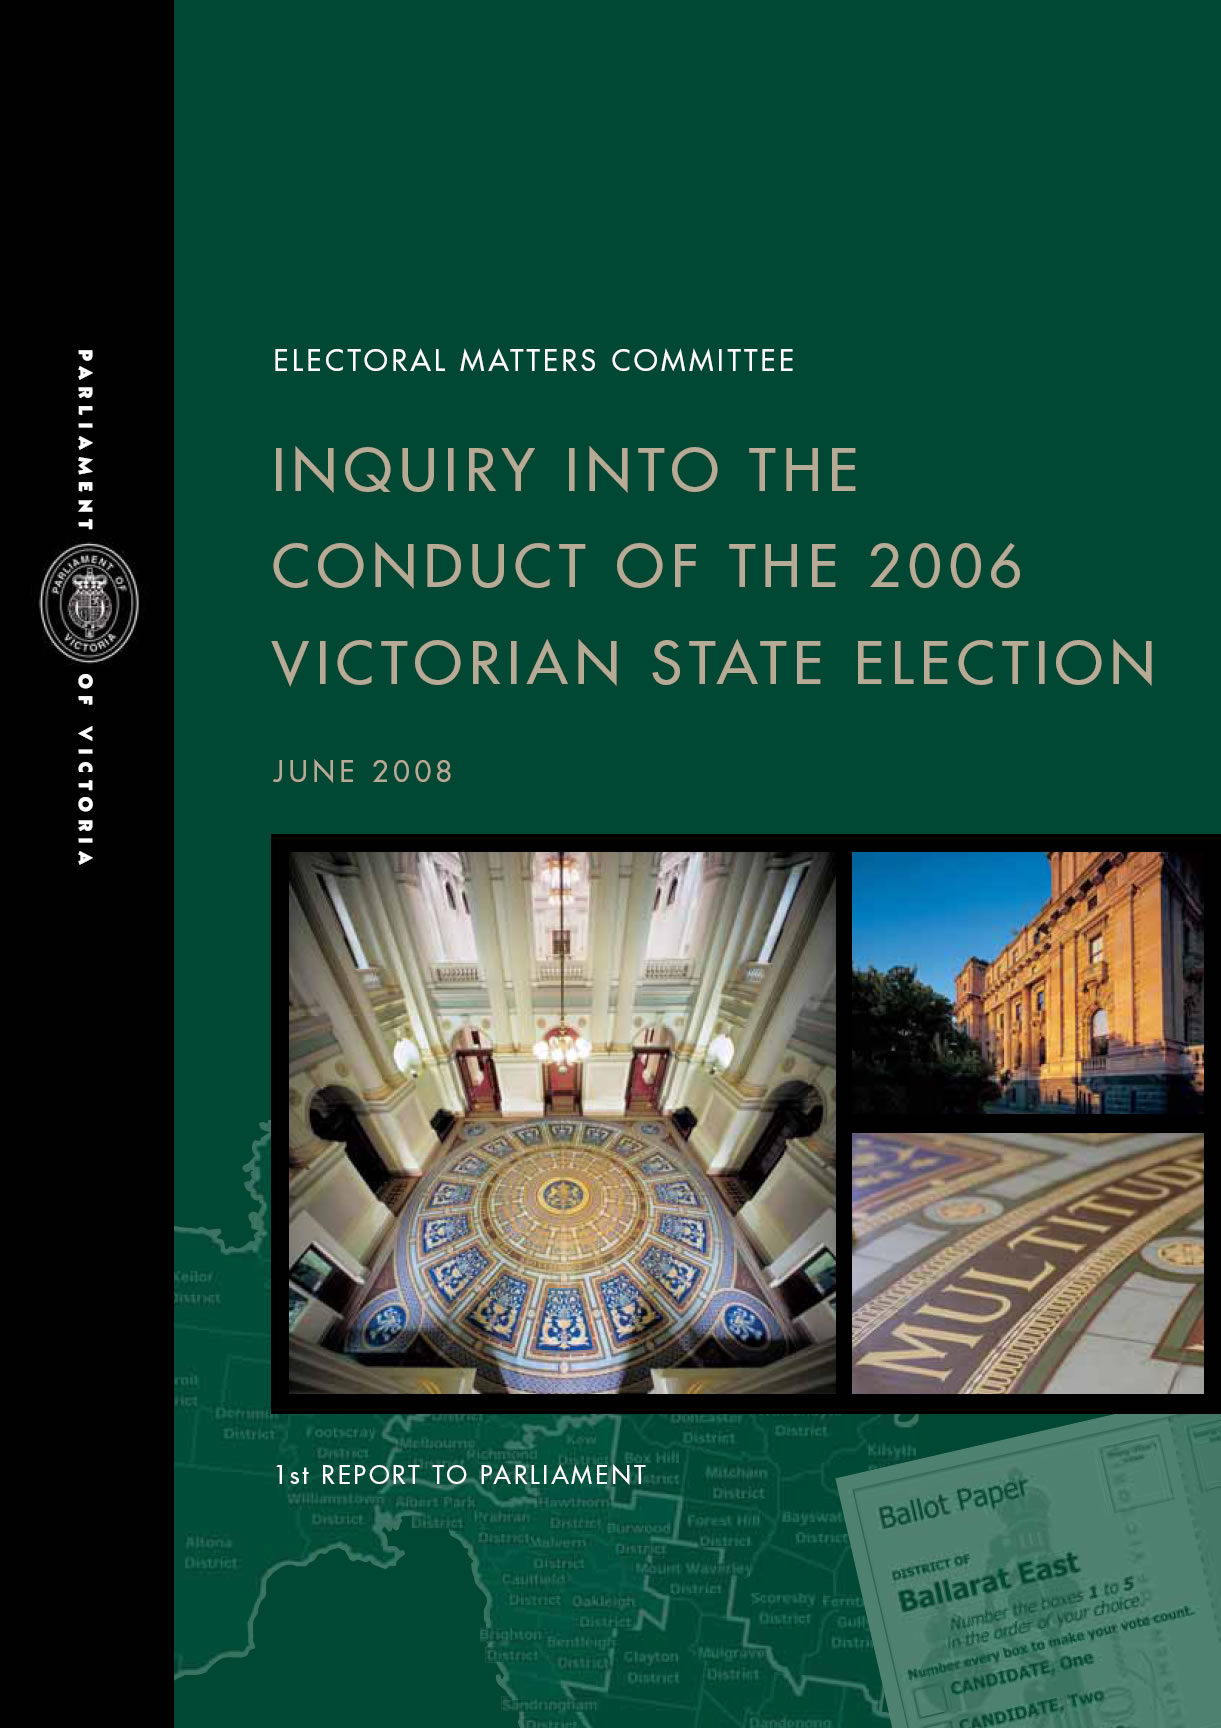 2006 Victorian state election